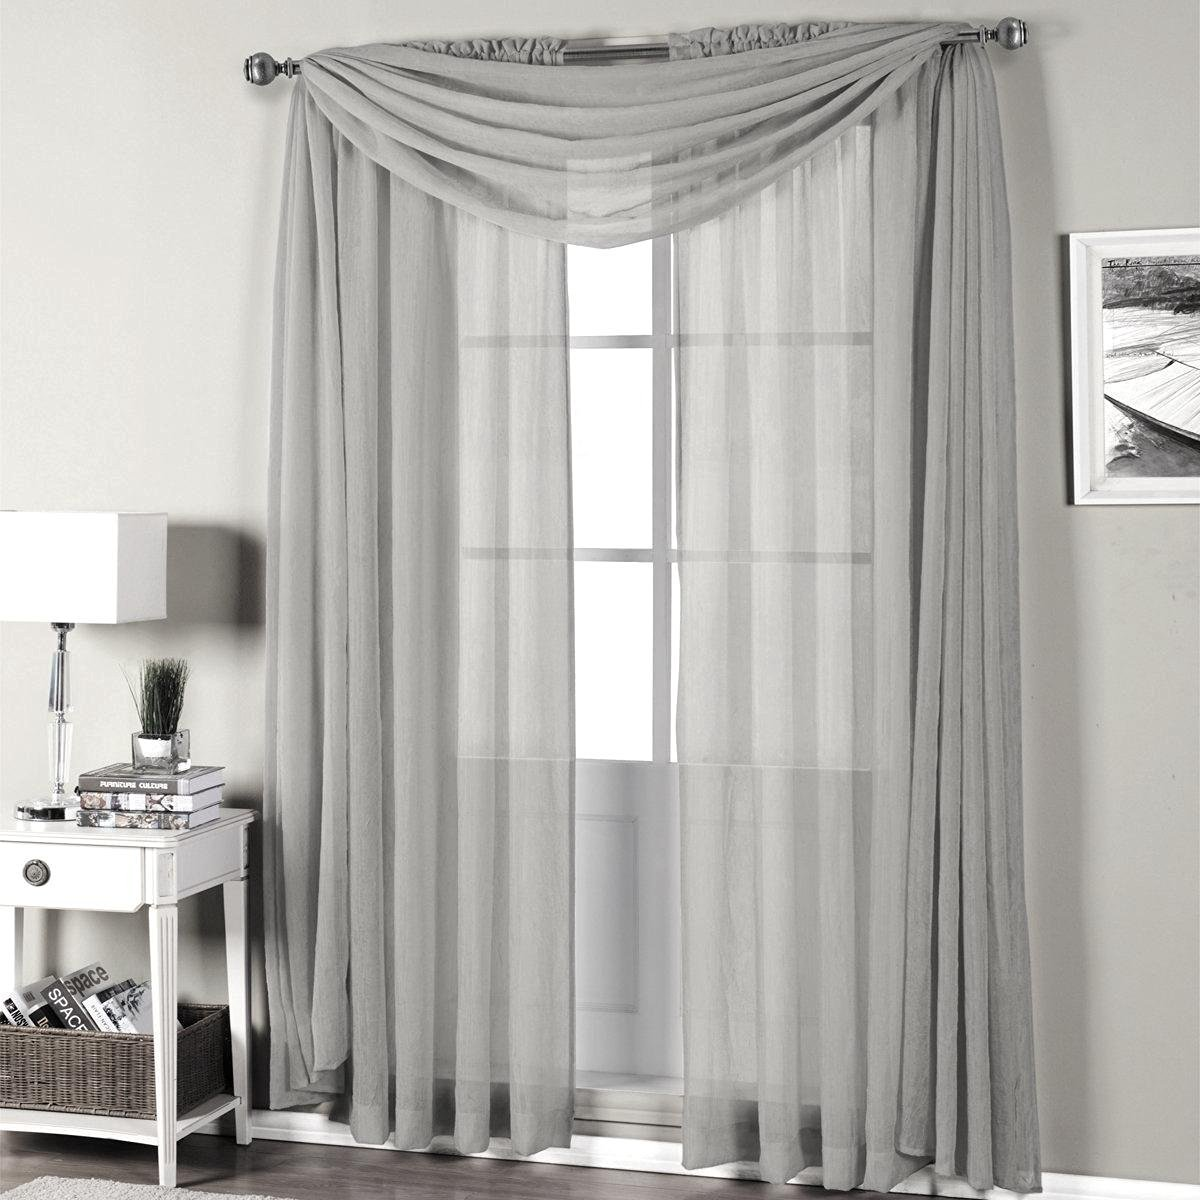 "Qutain Linen Solid Viole Sheer Curtain Window Panel Drapes Set of Two (2) 55"" x 63 inch - Silver"